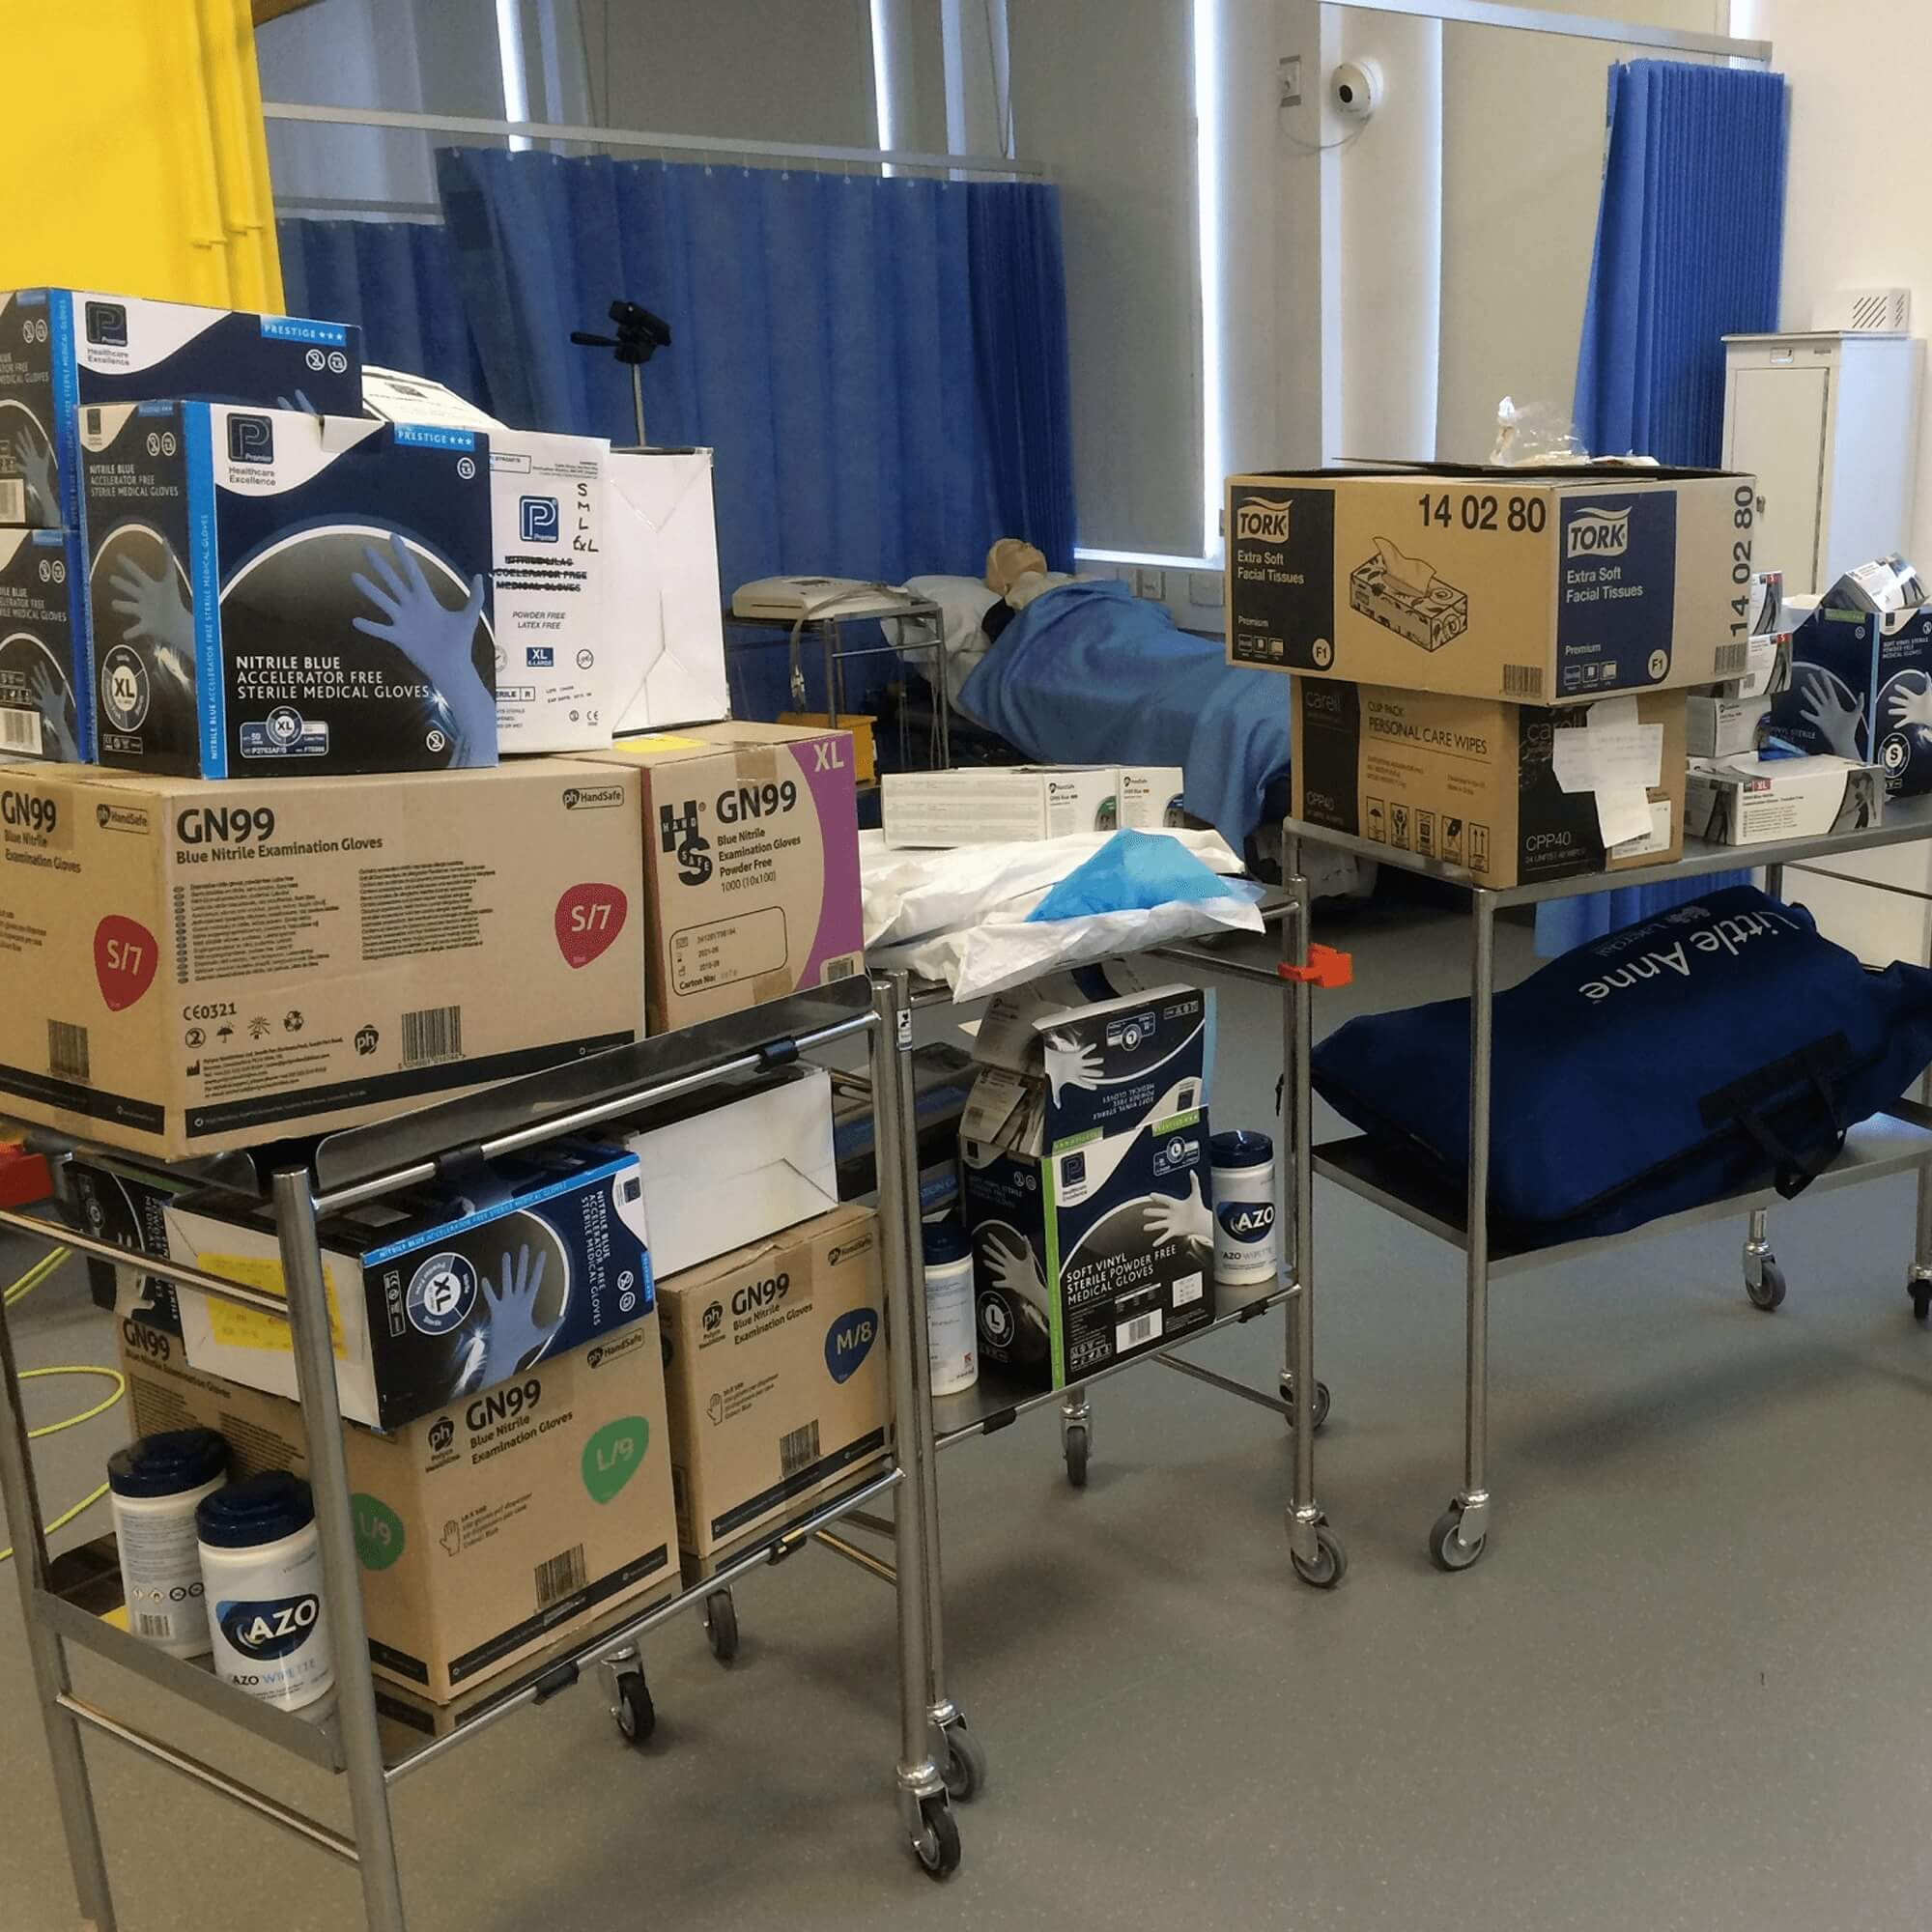 A picture of PPE kit on trolleys ready to be taken to hospitals